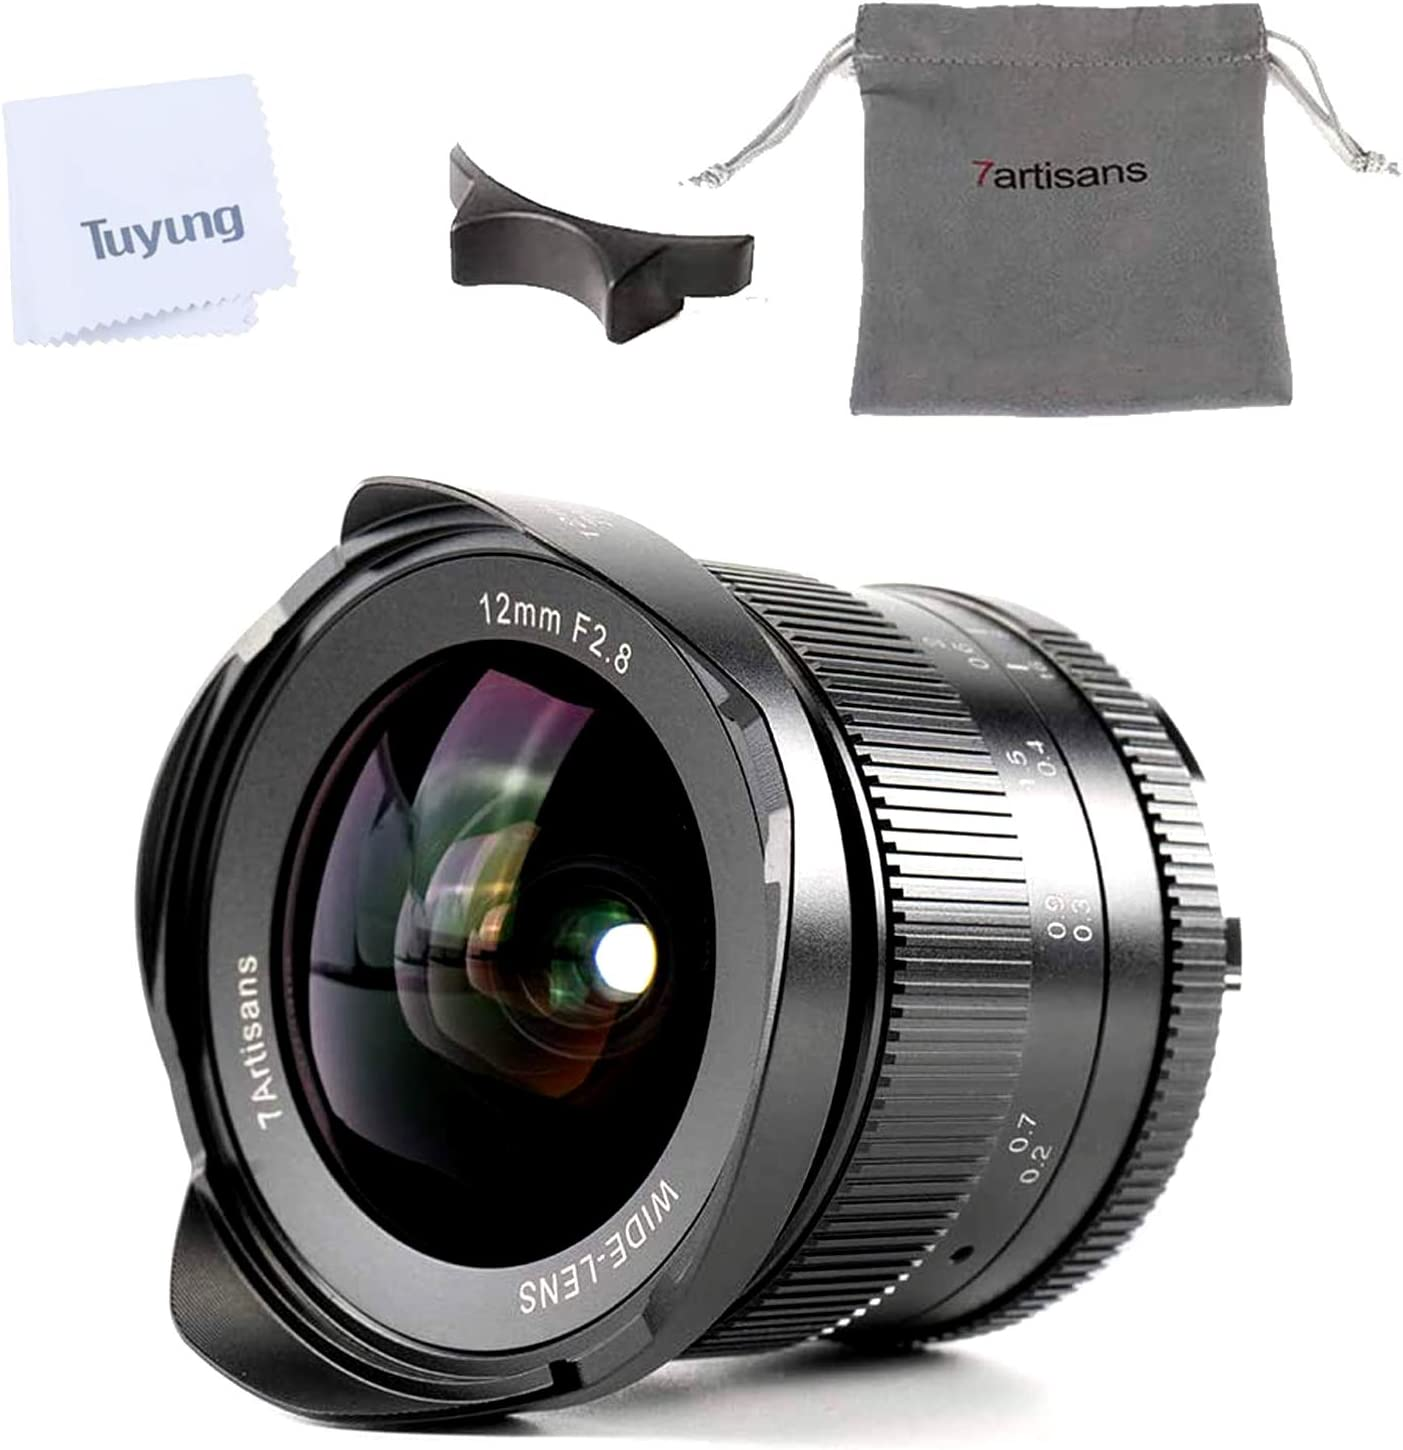 Manual Focus Prime Fixed Lens and TUYUNG Cloth 7artisans 12mm F2.8 Ultra Wide Angle Lens for Fujifilm FX Mount Mirrorless Camera